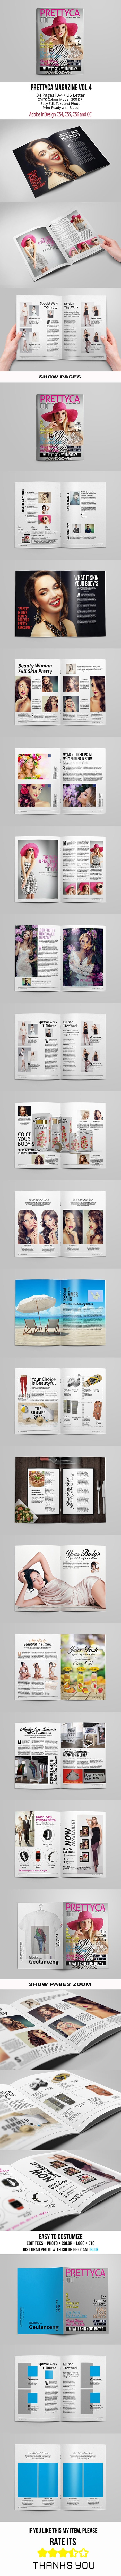 Magazine Layout Indesign A4/US Letter - $5 - Image Preview 2